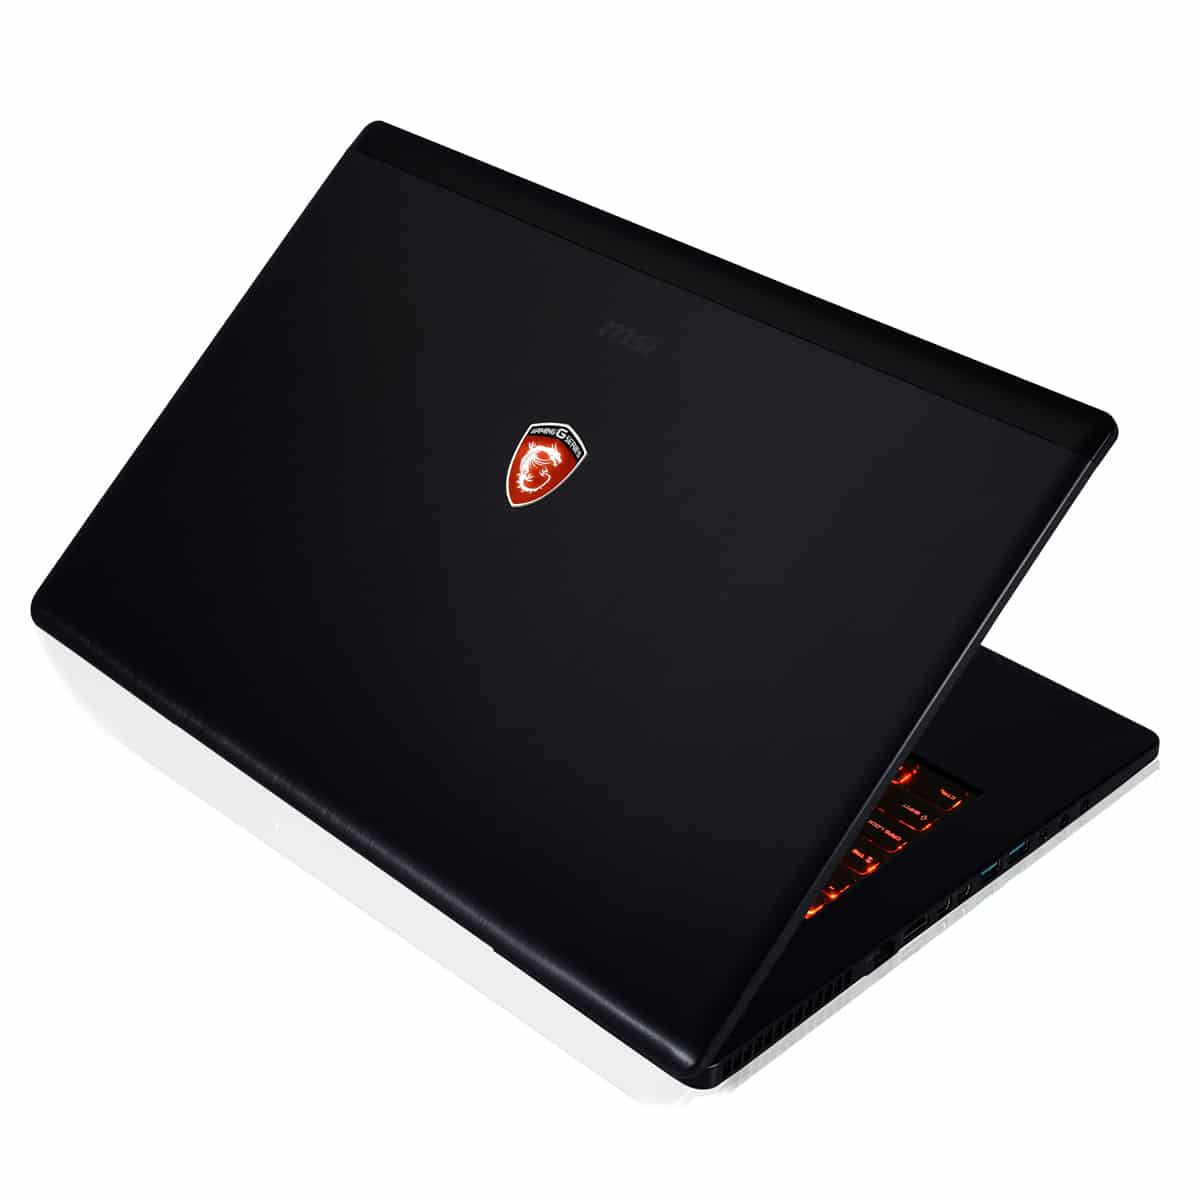 """<span class=""""tagtitre"""">Promo 1199€ - </span>MSI GS70 2OD-090 à 1329€, 17.3"""" Full HD mat : GTX 765M, i7 Haswell, 8 Go, SSD 128 Go+1 To 7200tr"""